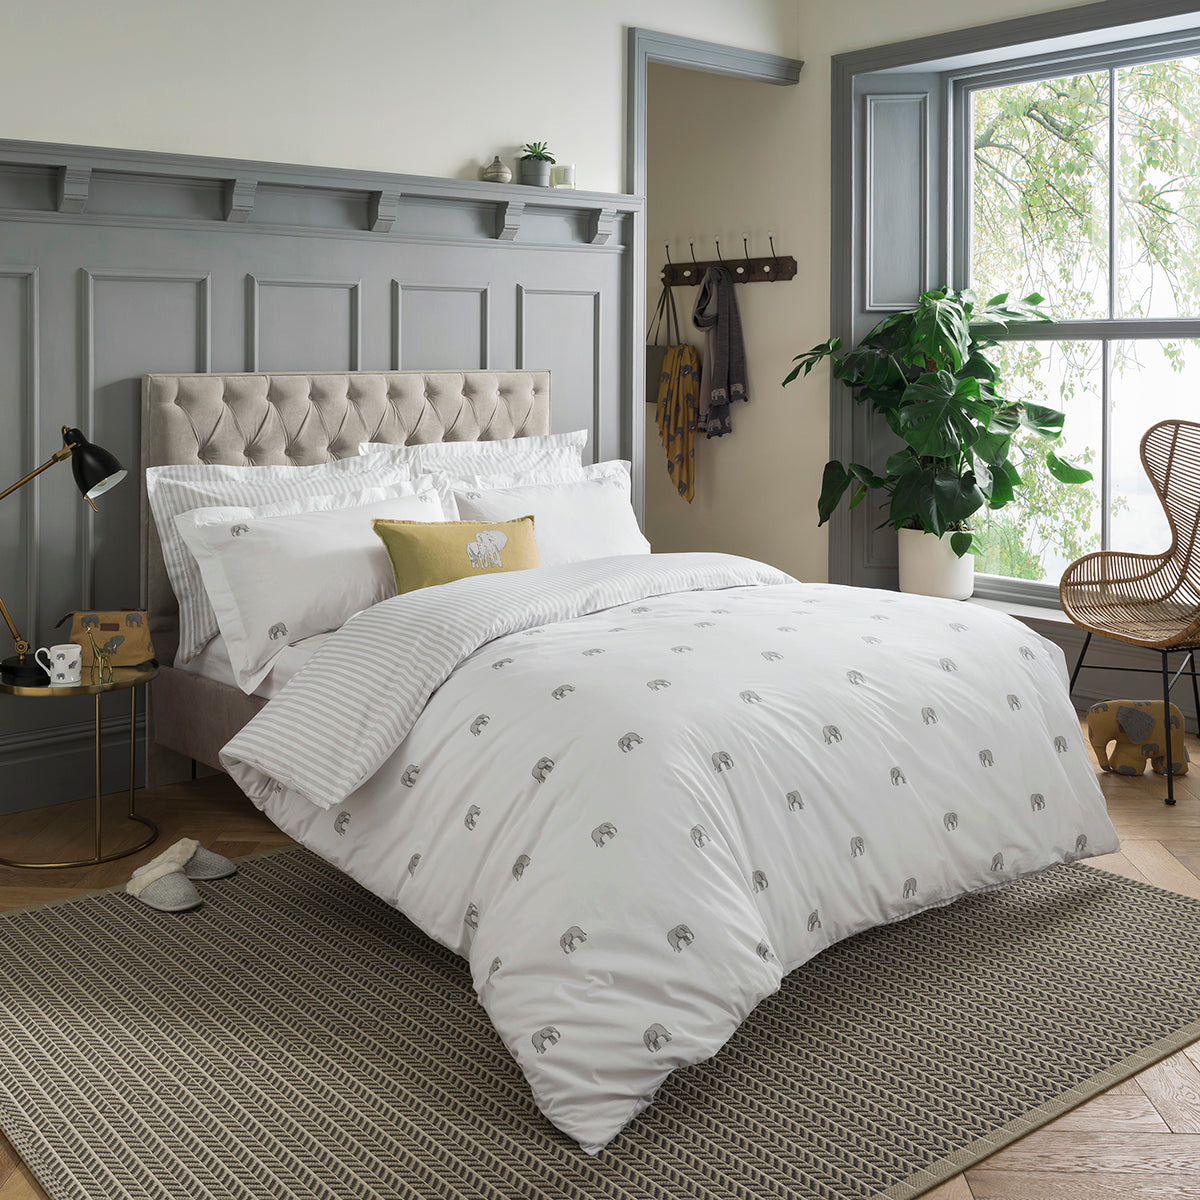 Elephant Bedding Set by Sophie Allport